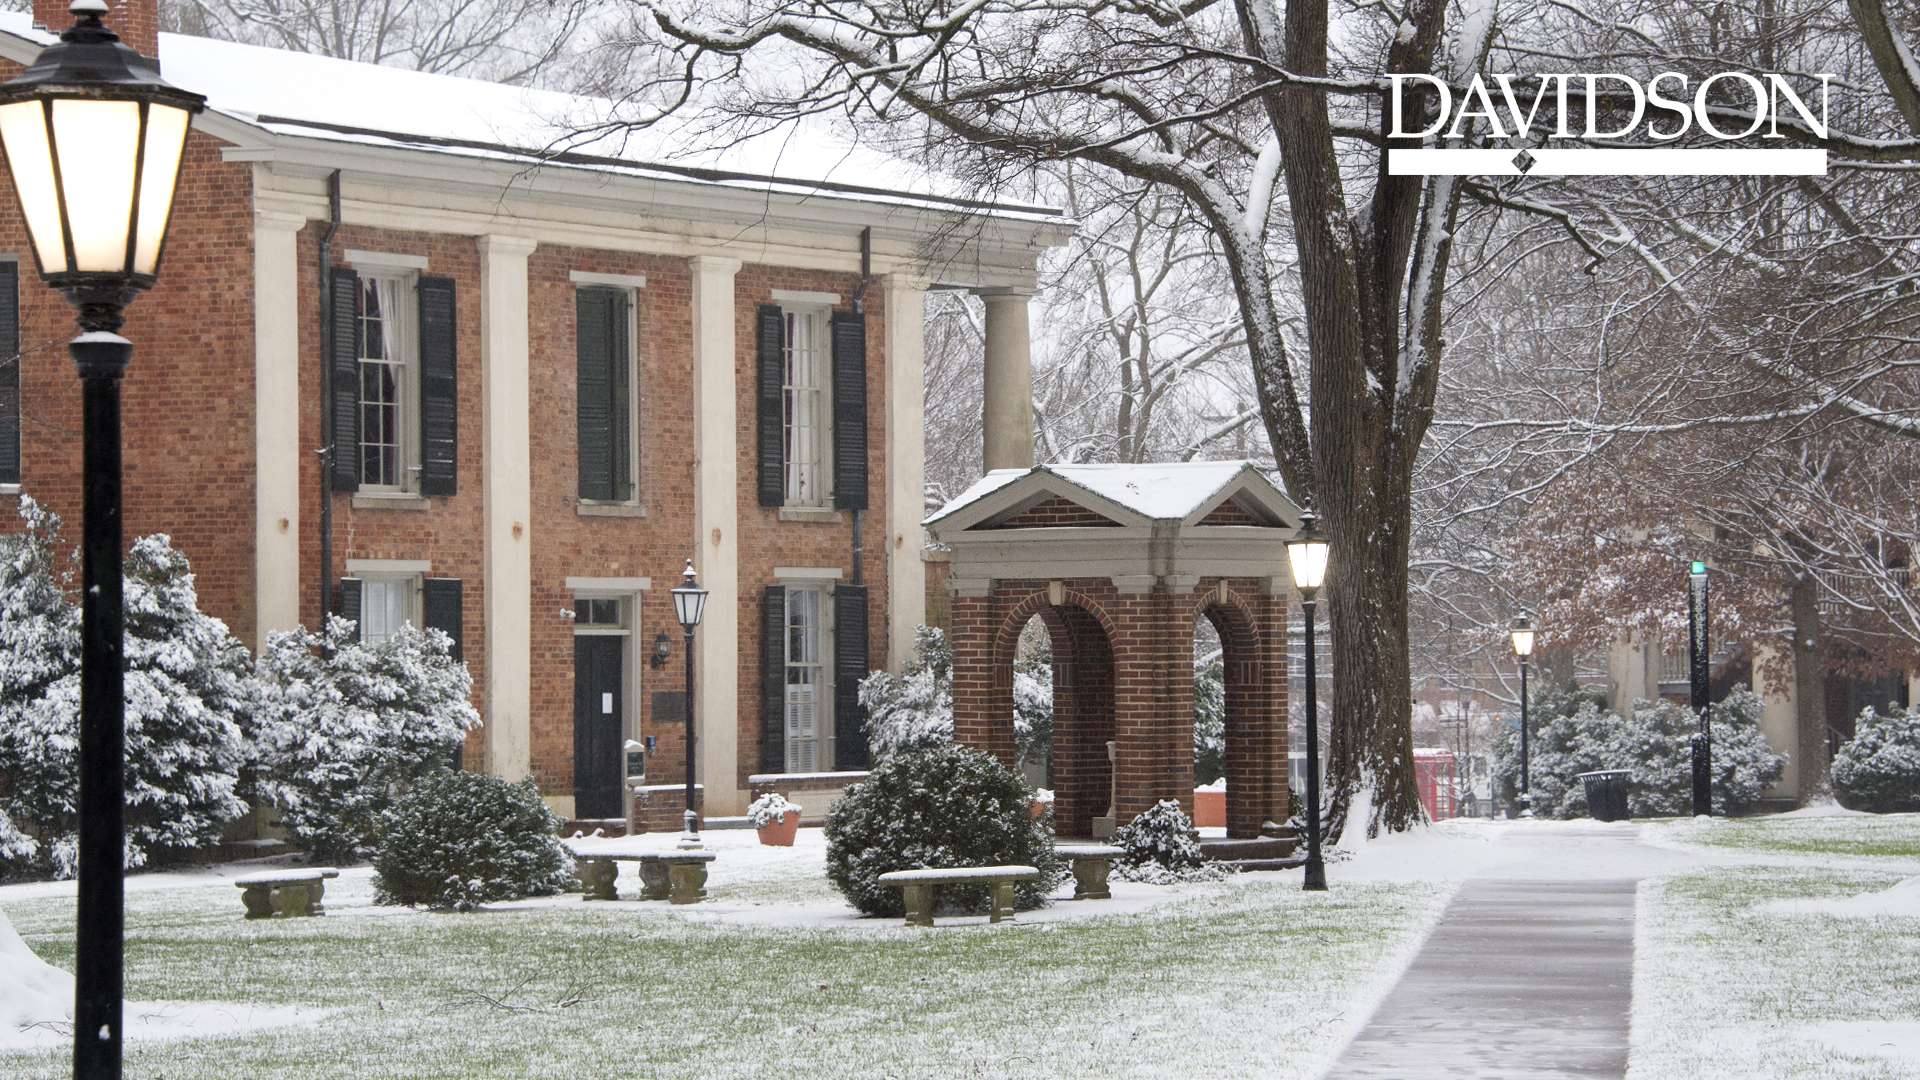 Historic campus with snow and Davidson logo